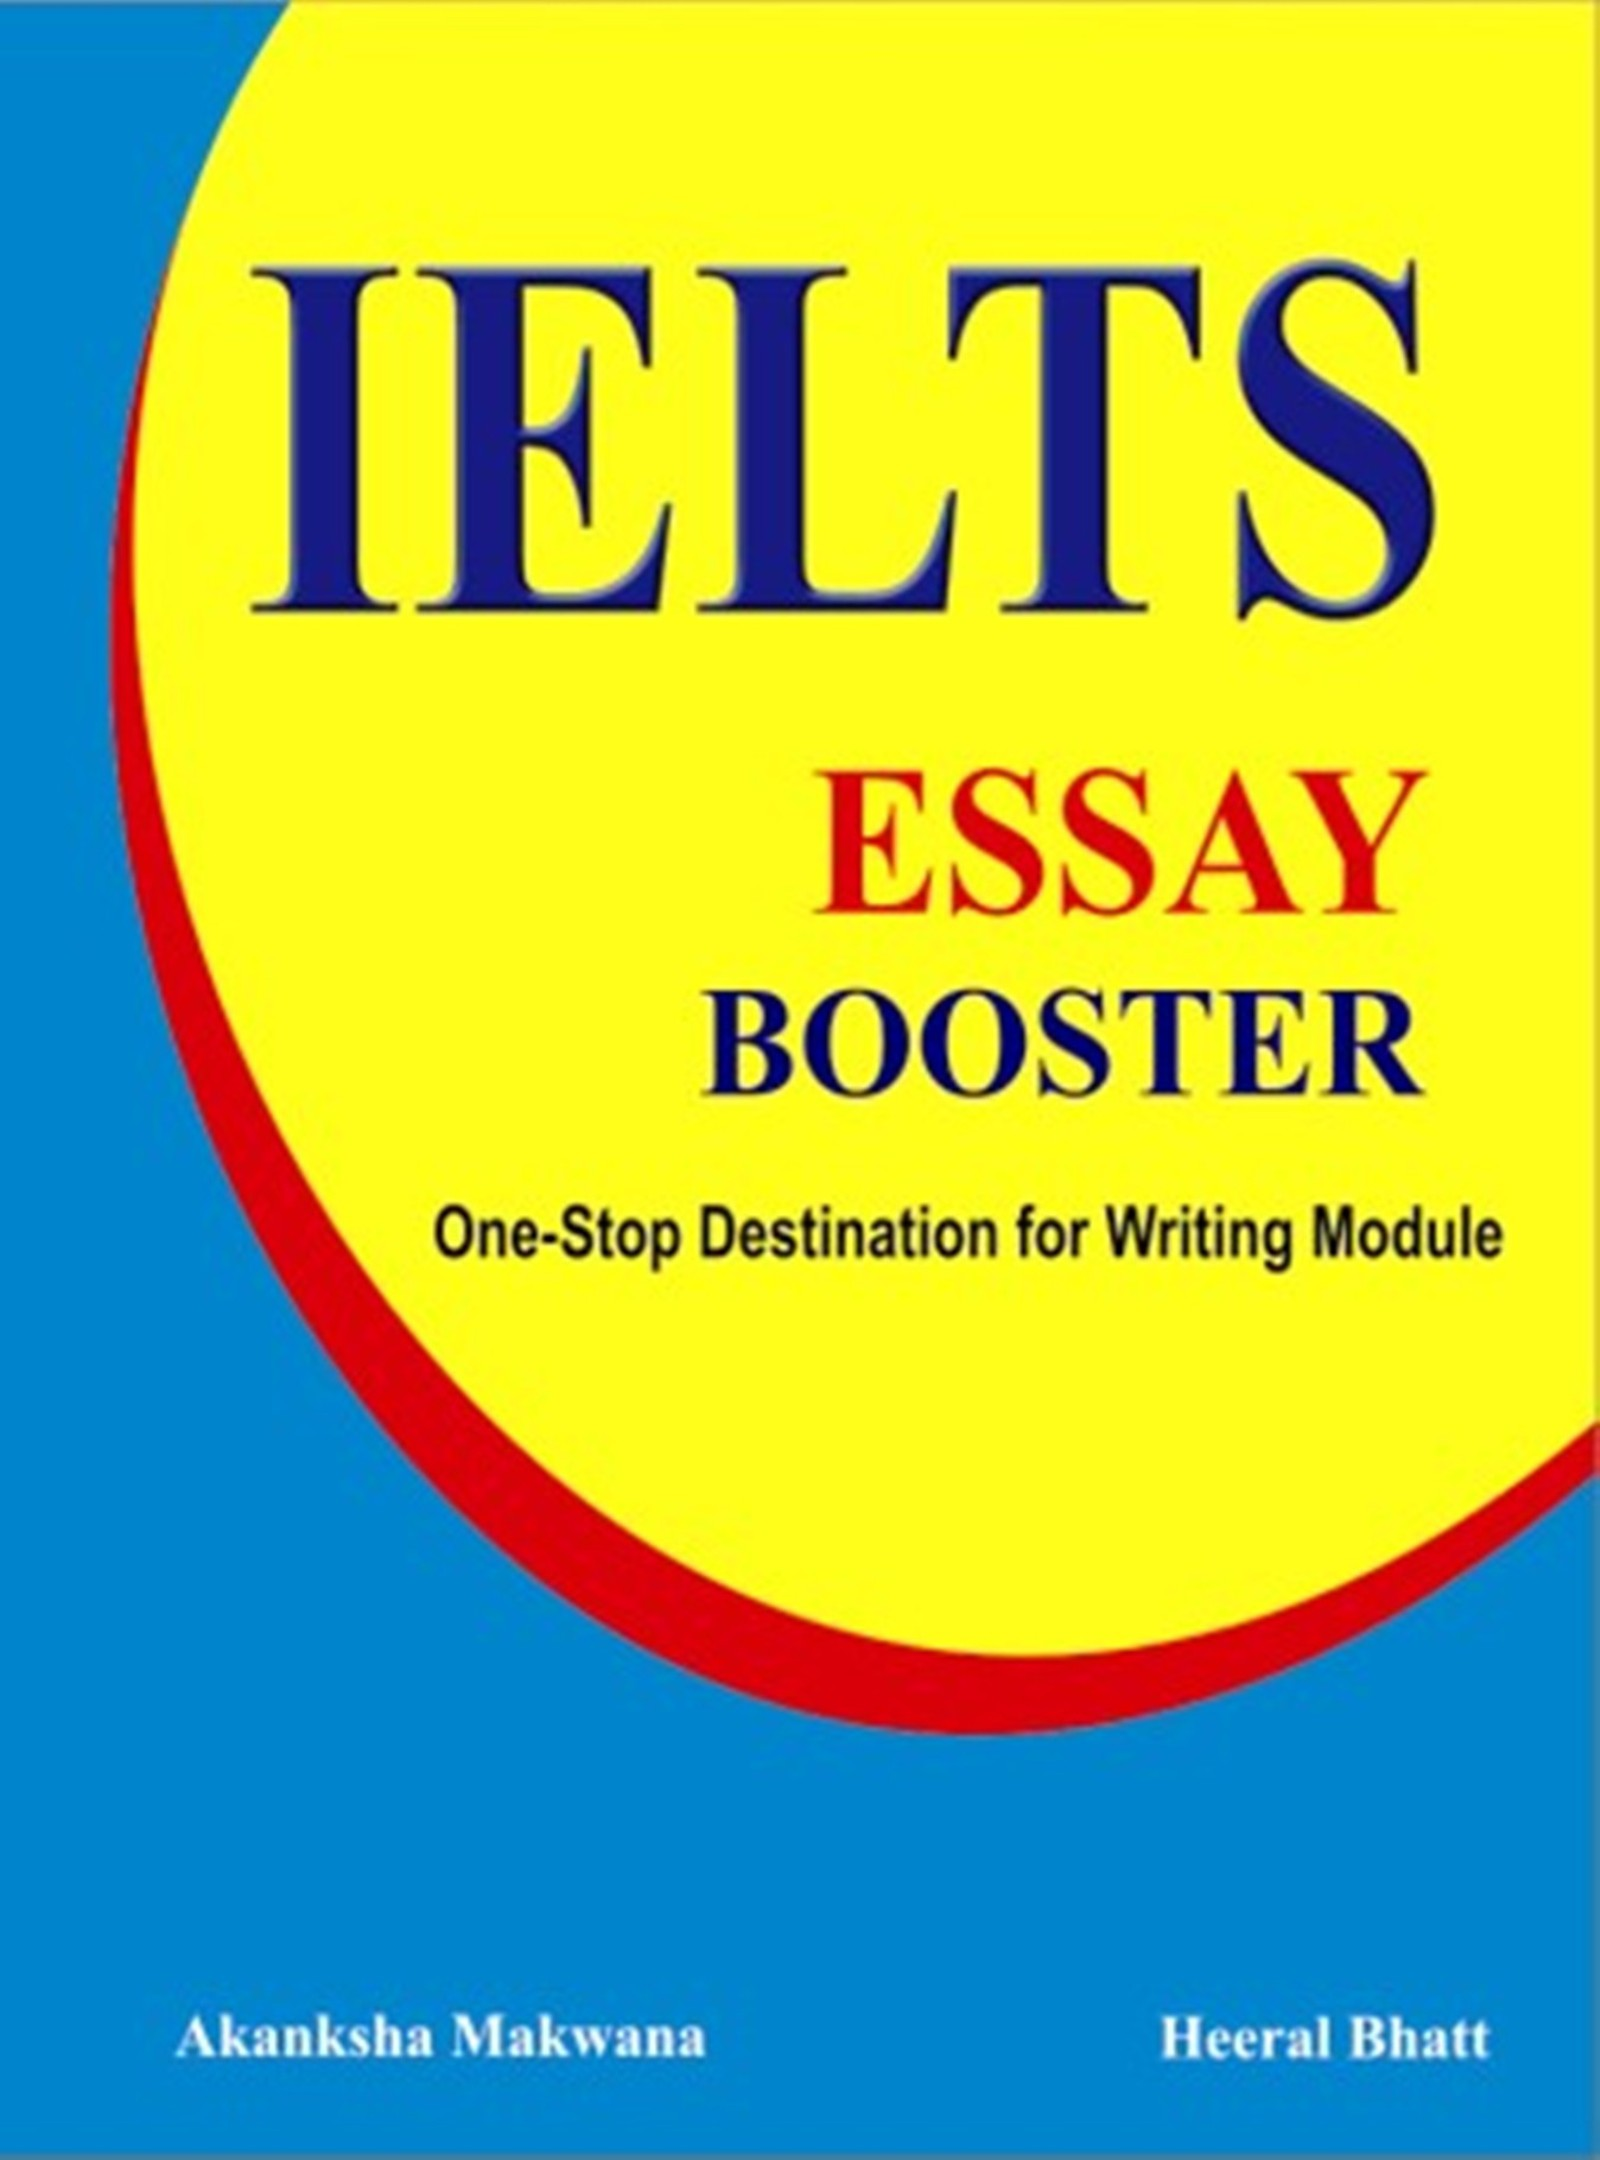 books for ielts essay writing On this page you can download free ielts essay sample and check information about ielts essay writing and toefl essay writing look for more useful tips here.